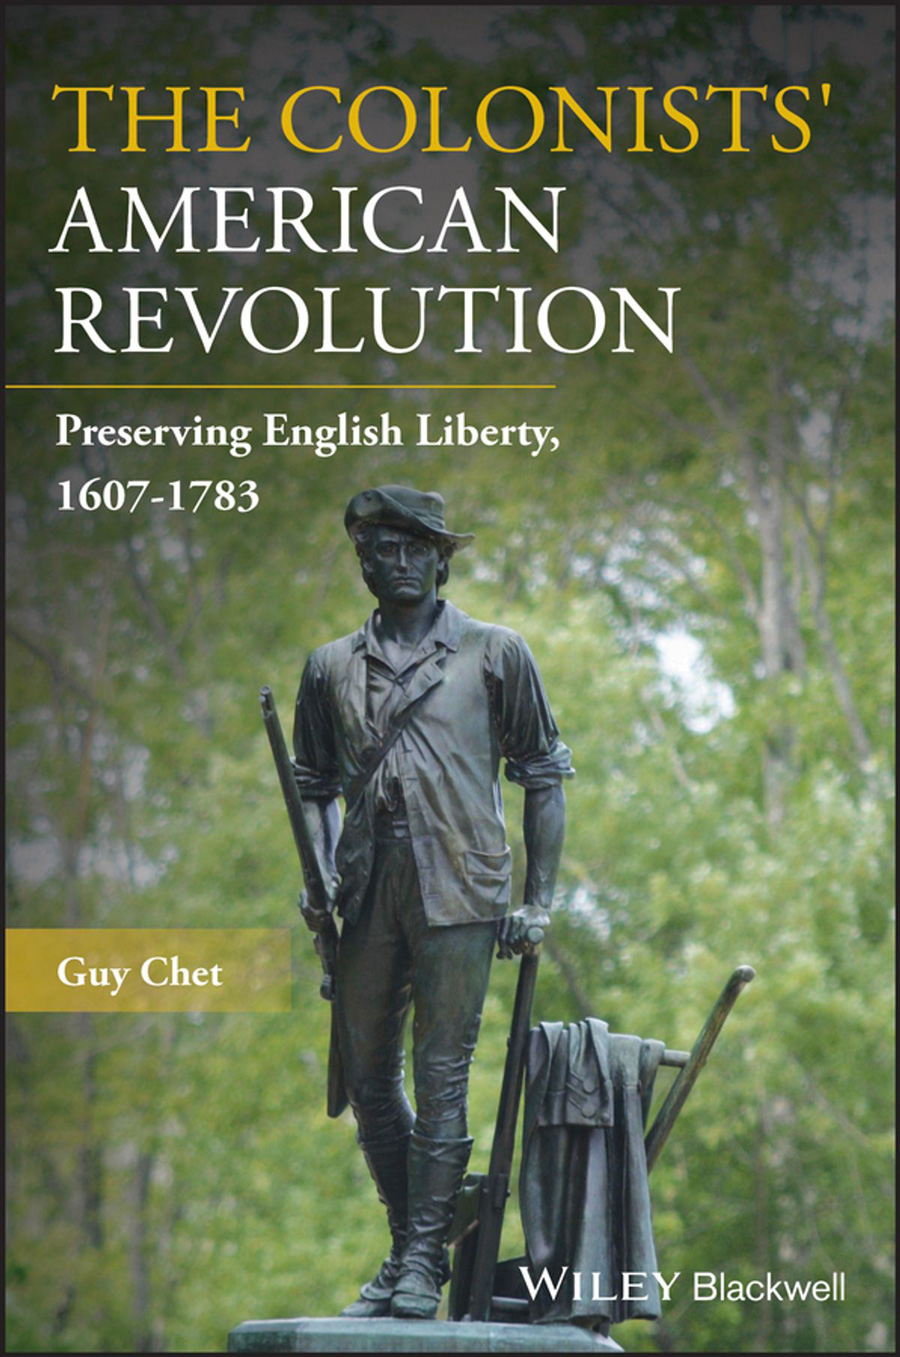 The Colonists' American Revolution Preserving English Liberty